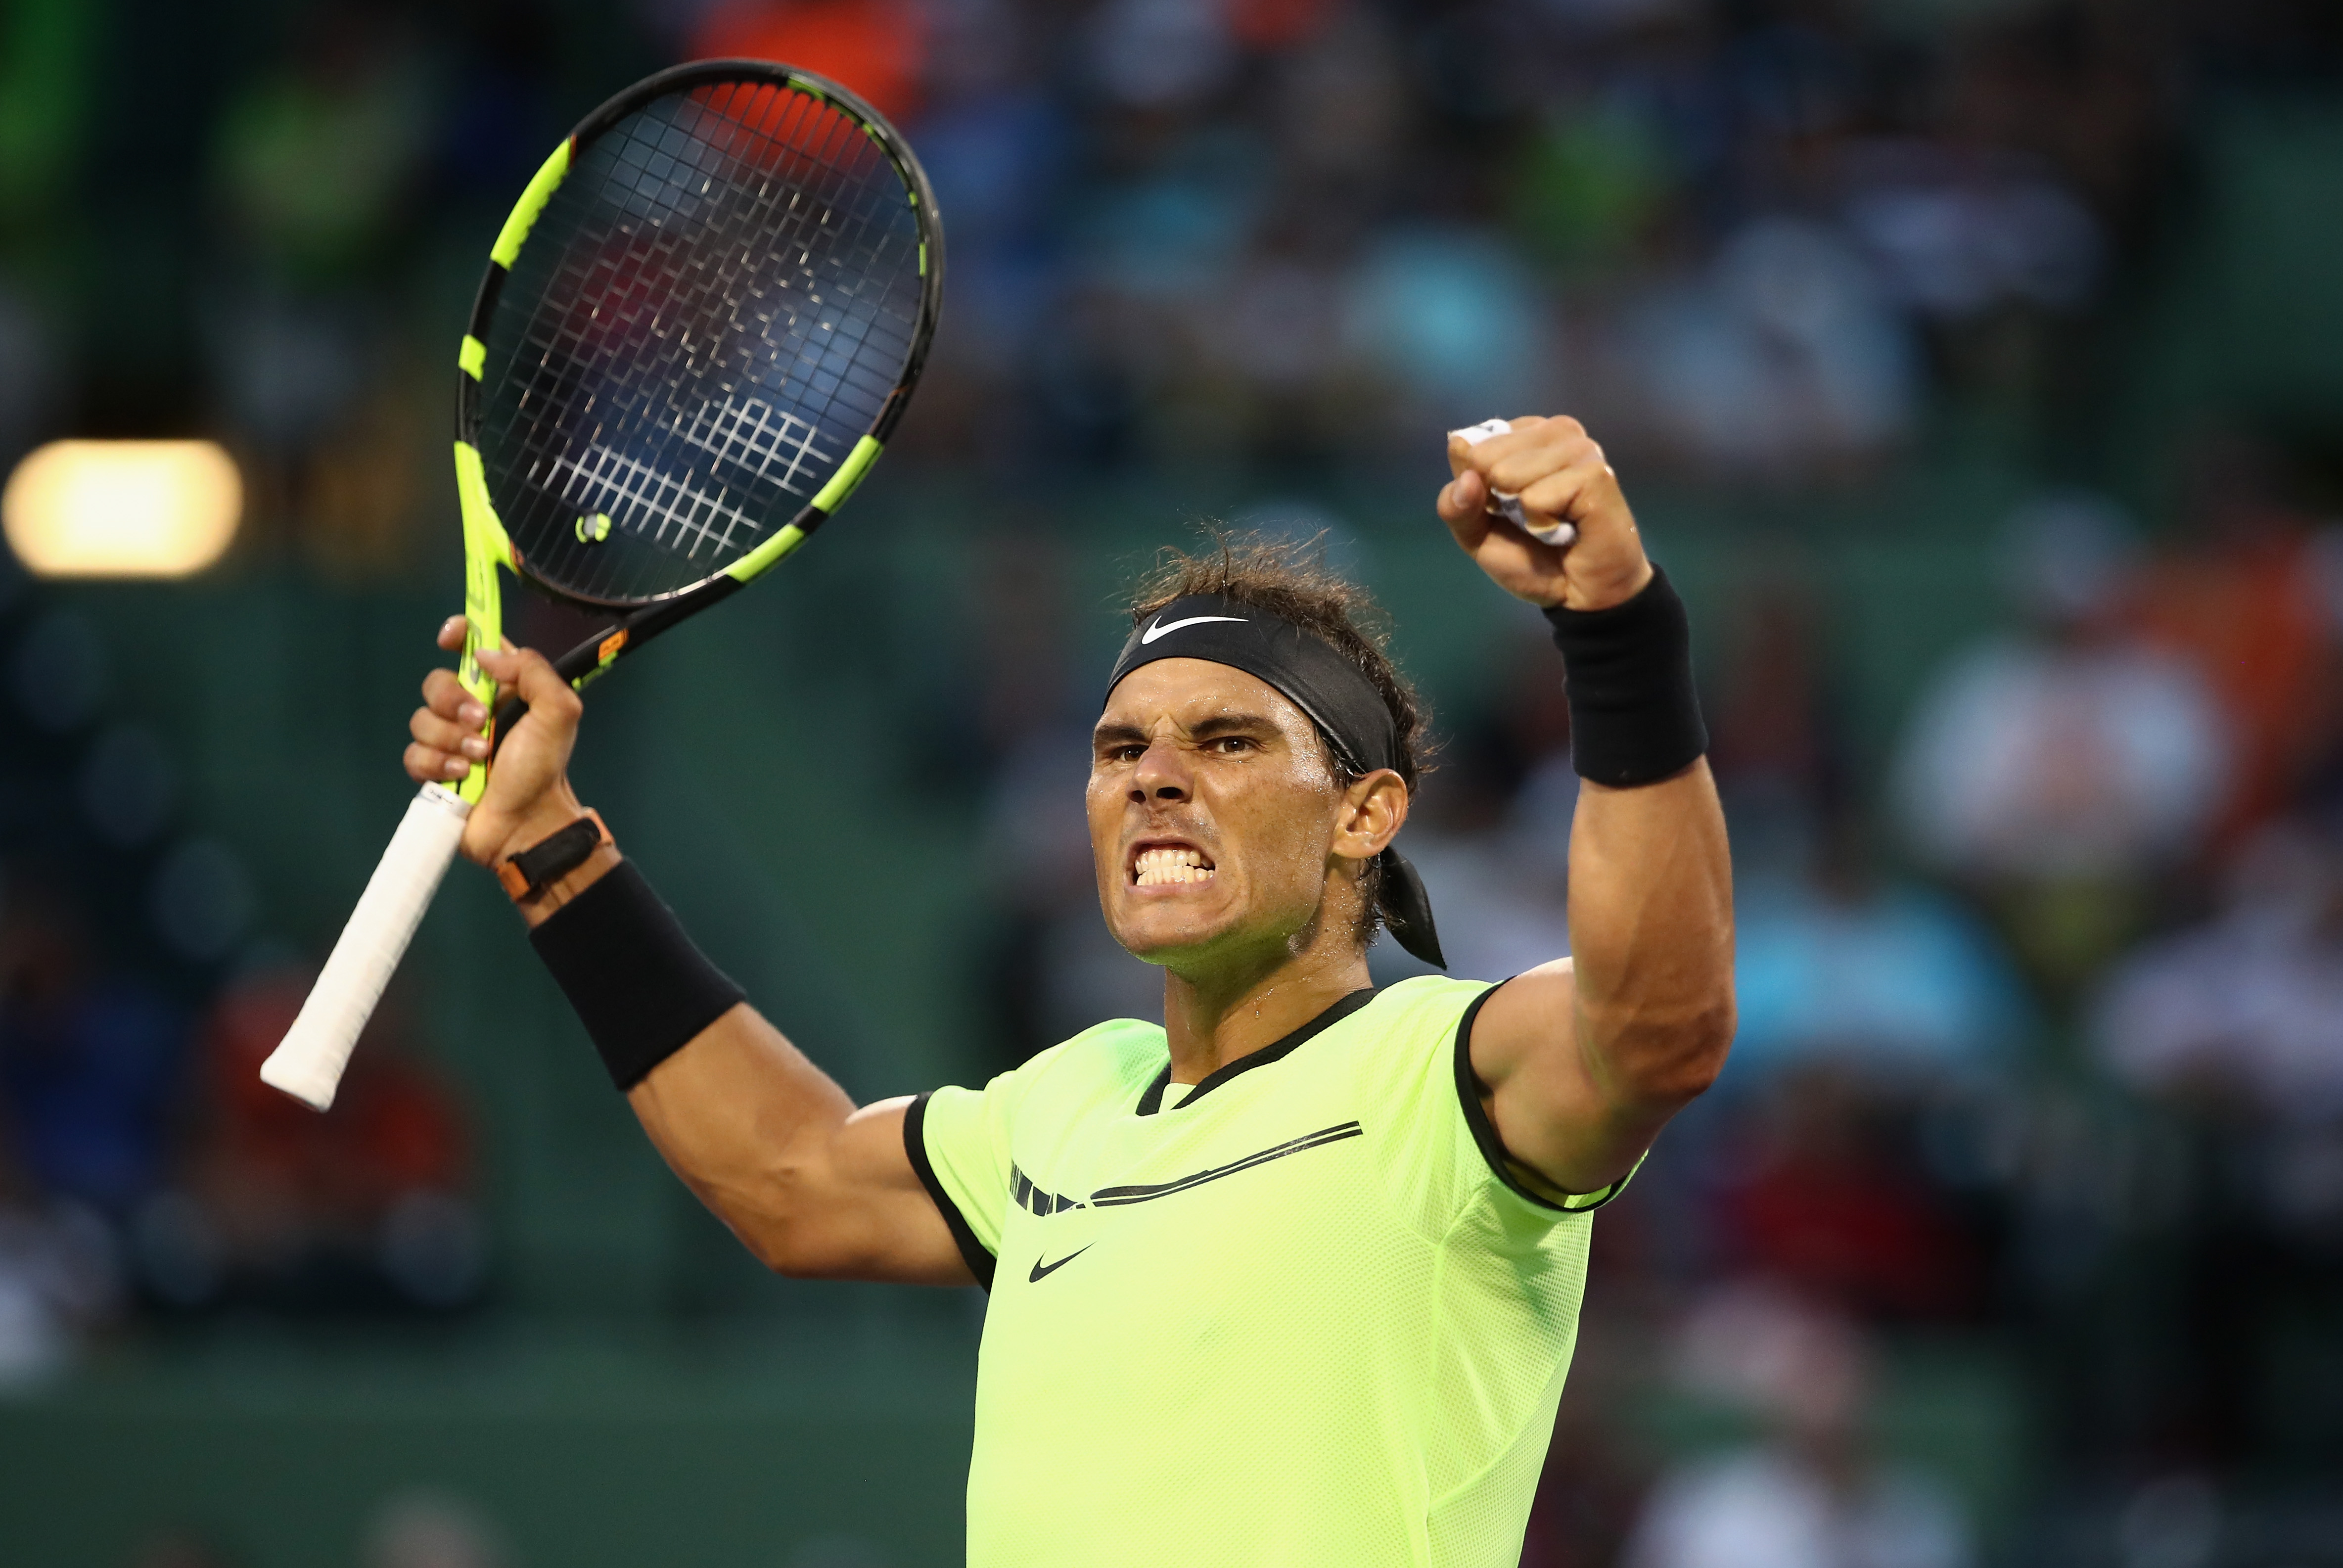 Rafael Nadal bagelled in 1000th match but fights back to reach Miami Open round four